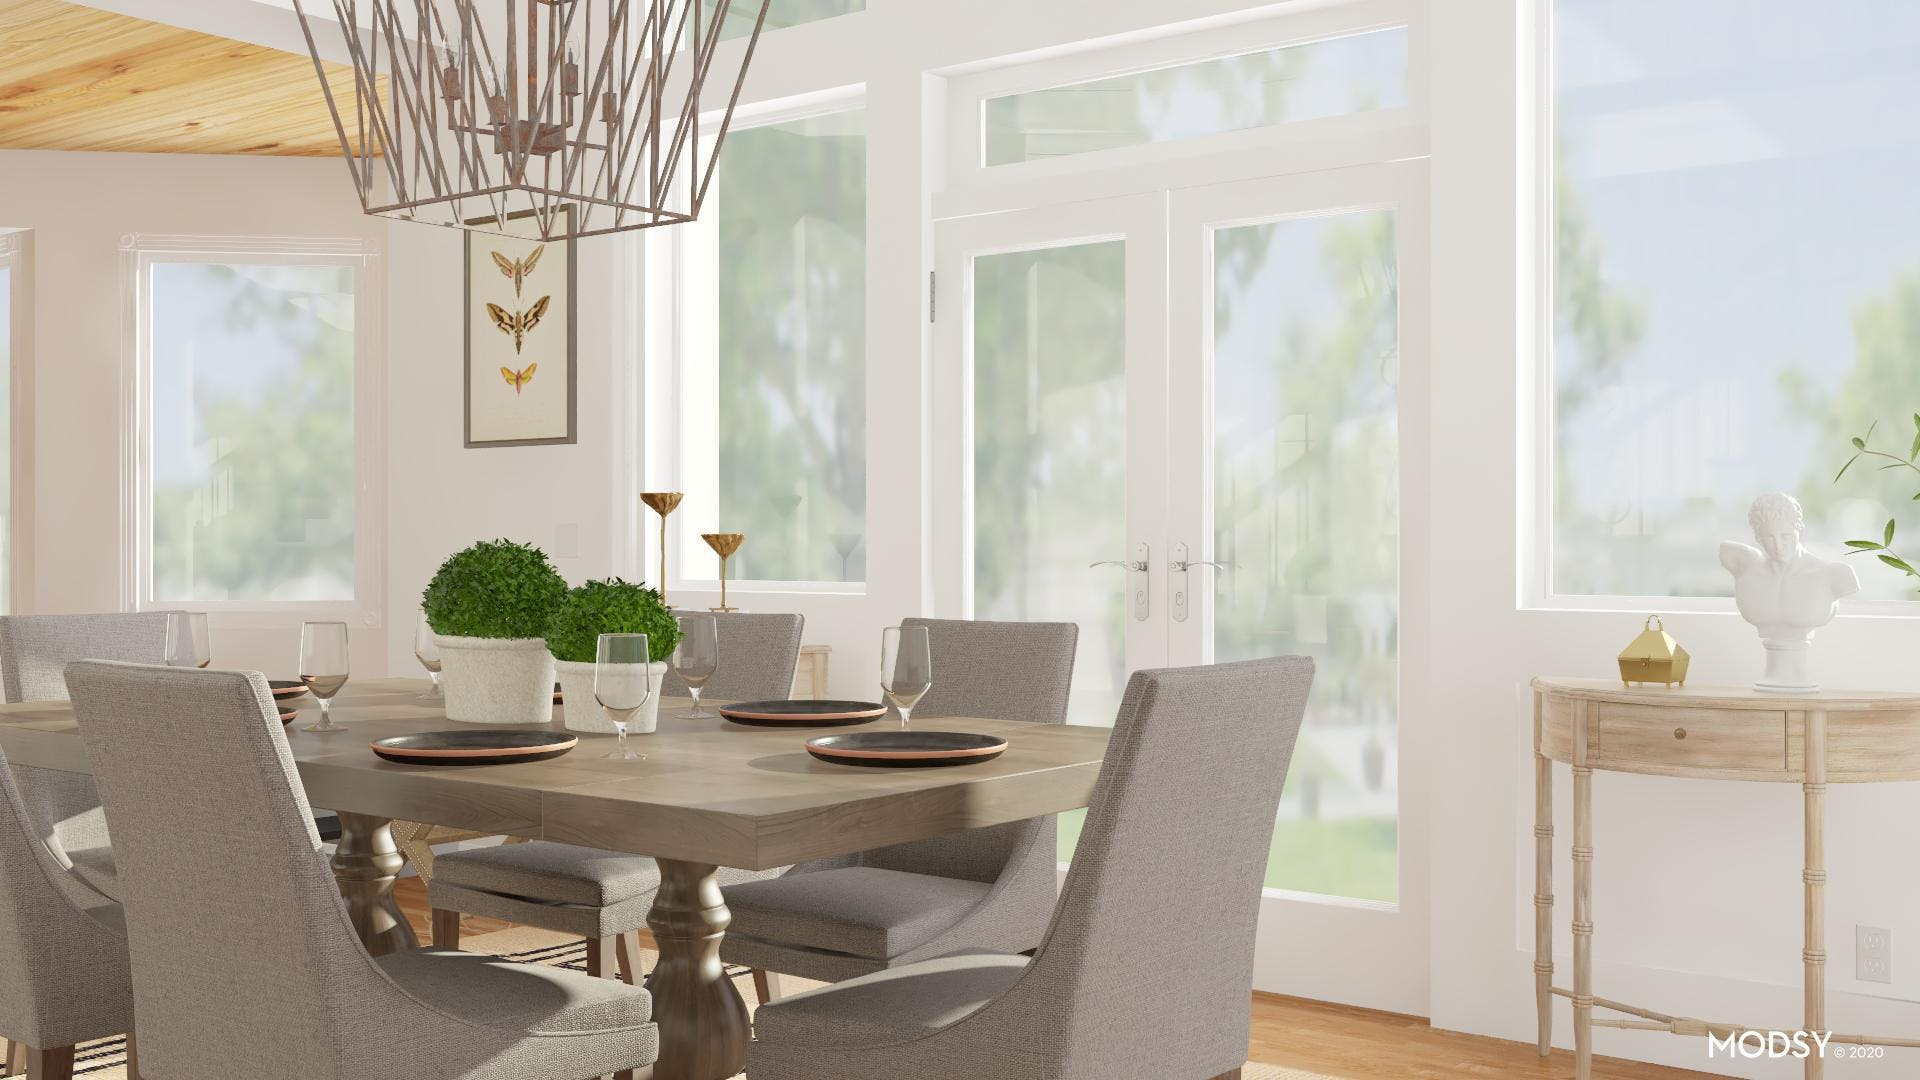 Sit And Stay A While: Dining Seating